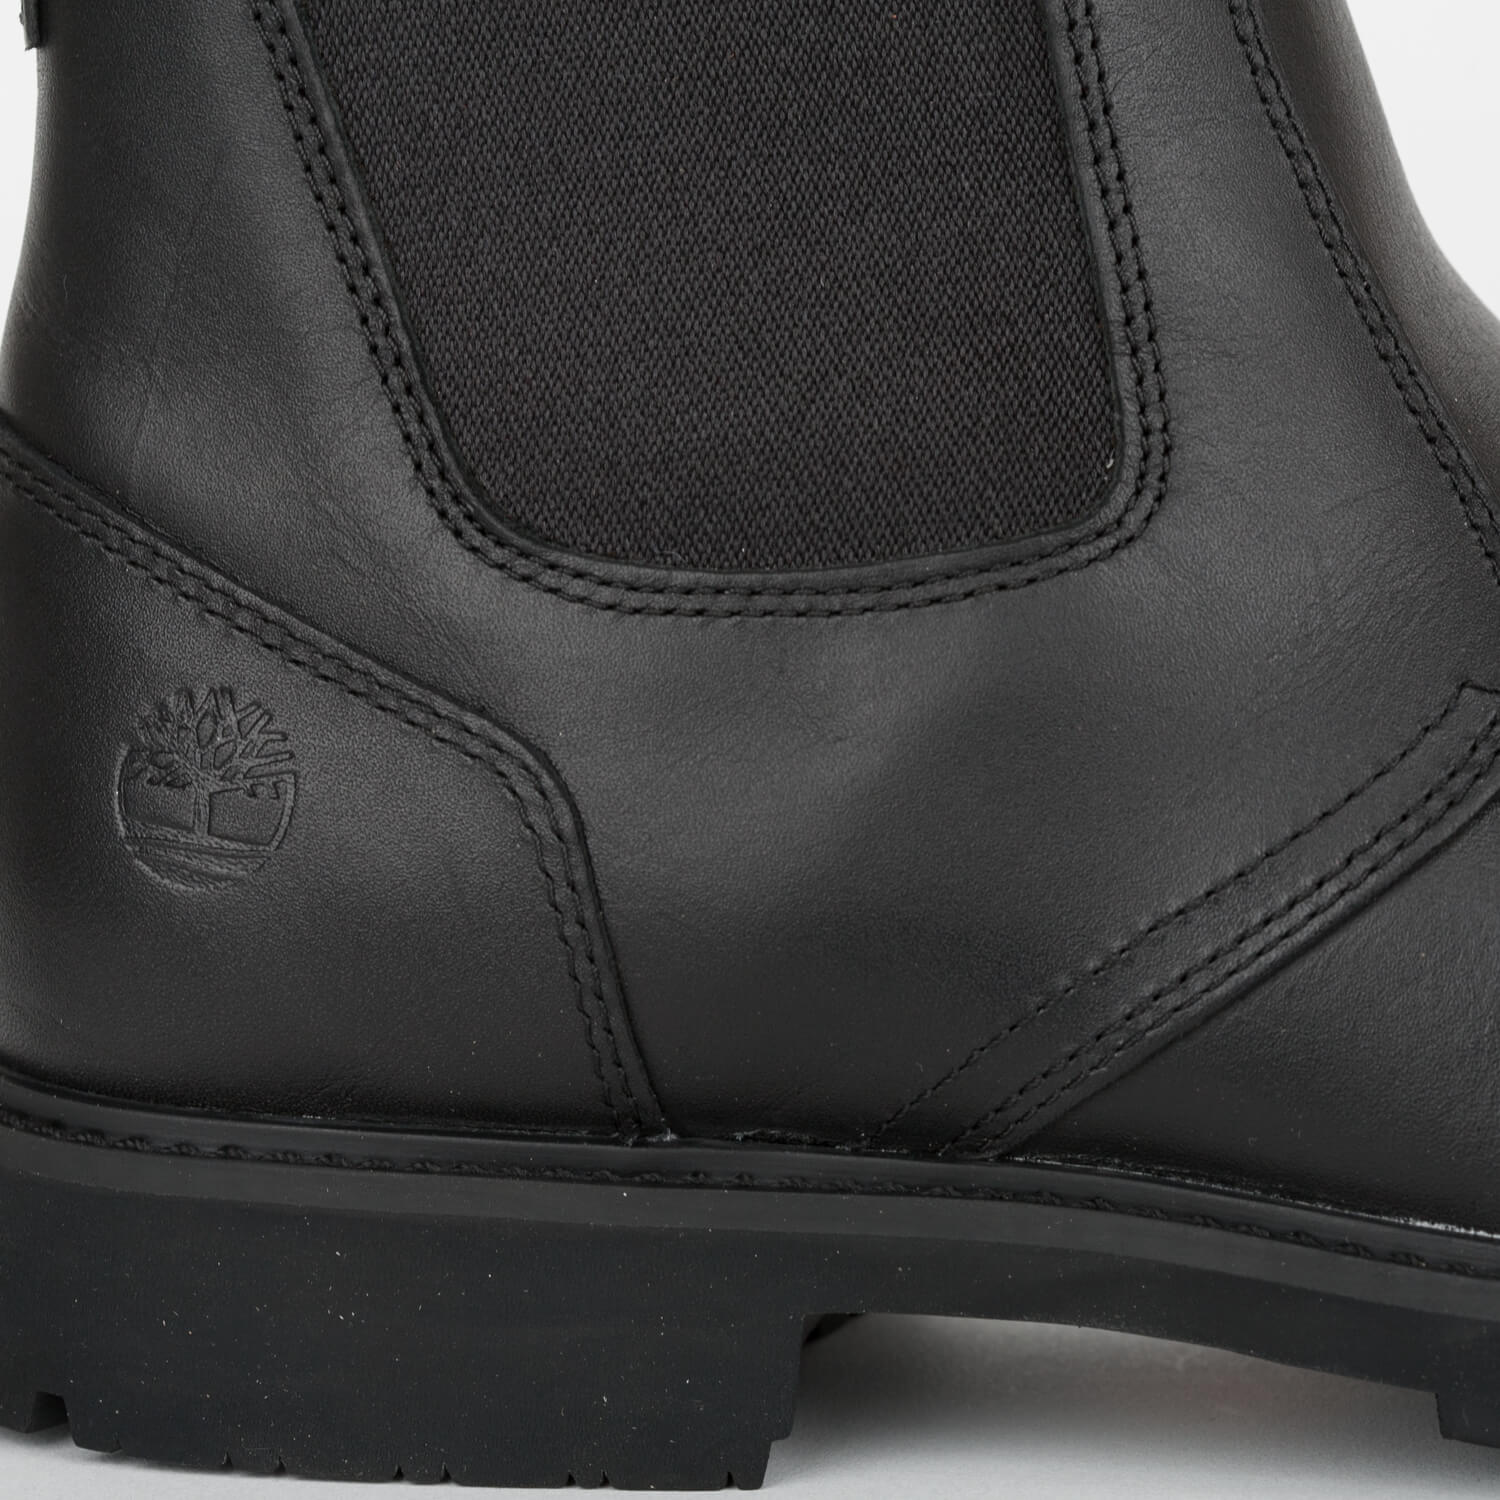 7130d9e94bc Details about Timberland Stormbucks Chelsea Boots Black Men's Boots Full  Grain Leather